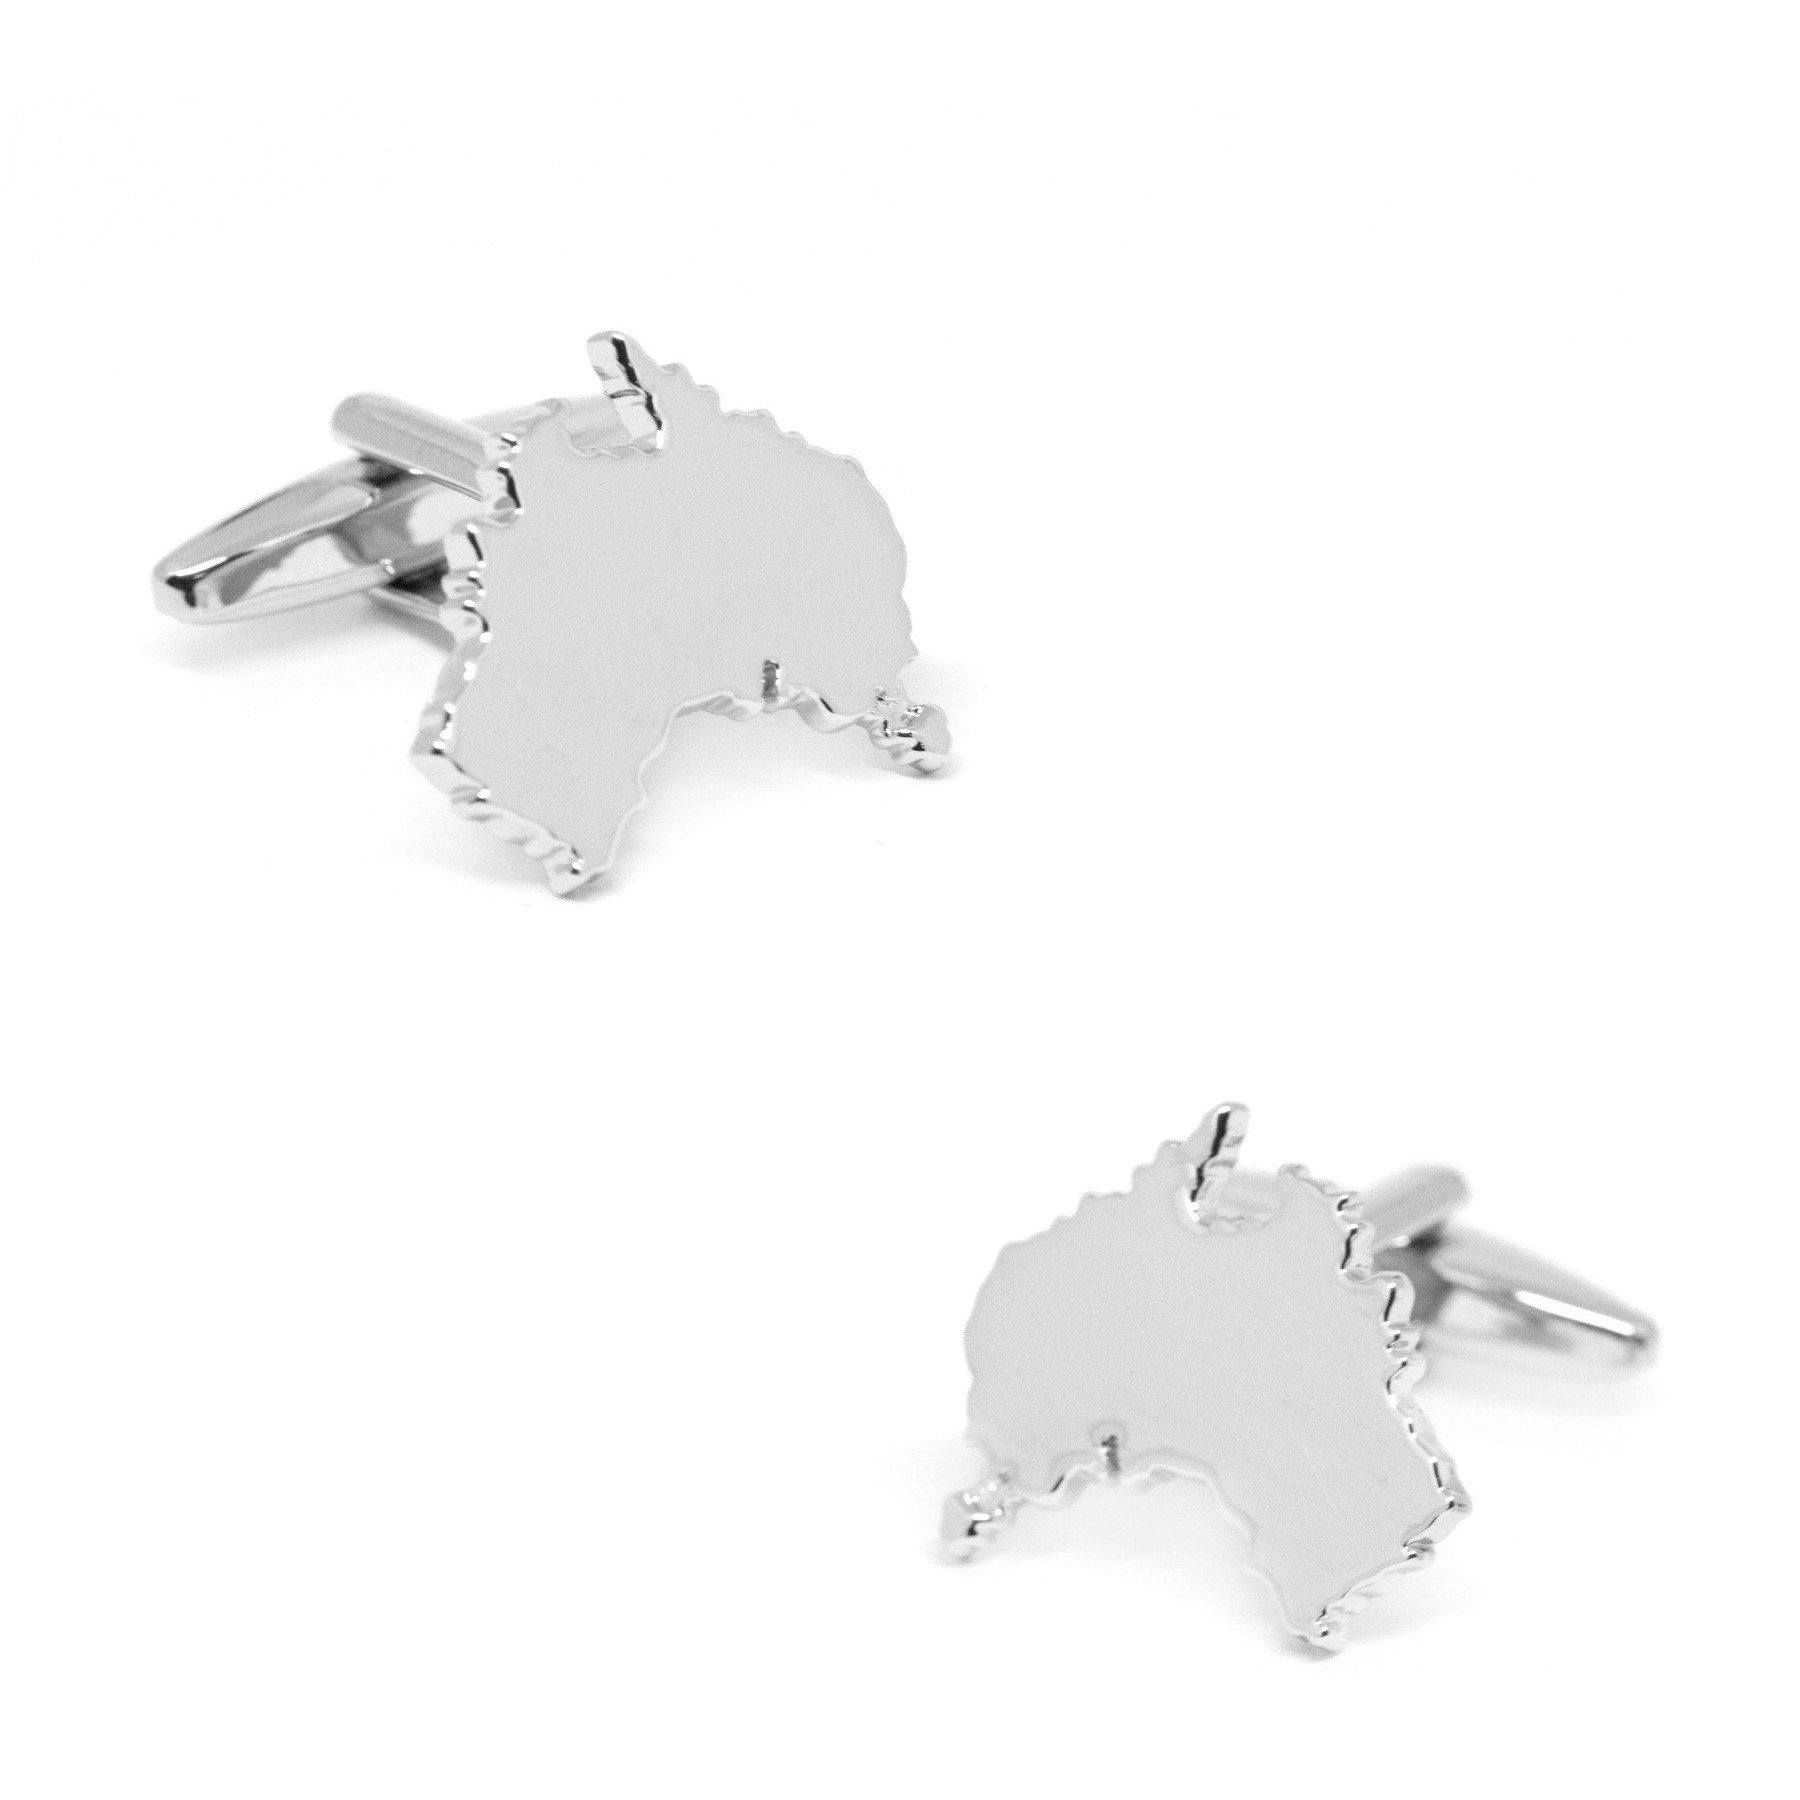 Outline Australian Map Cufflinks, Novelty Cufflinks, Cuffed.com.au, CL8507, $29.00